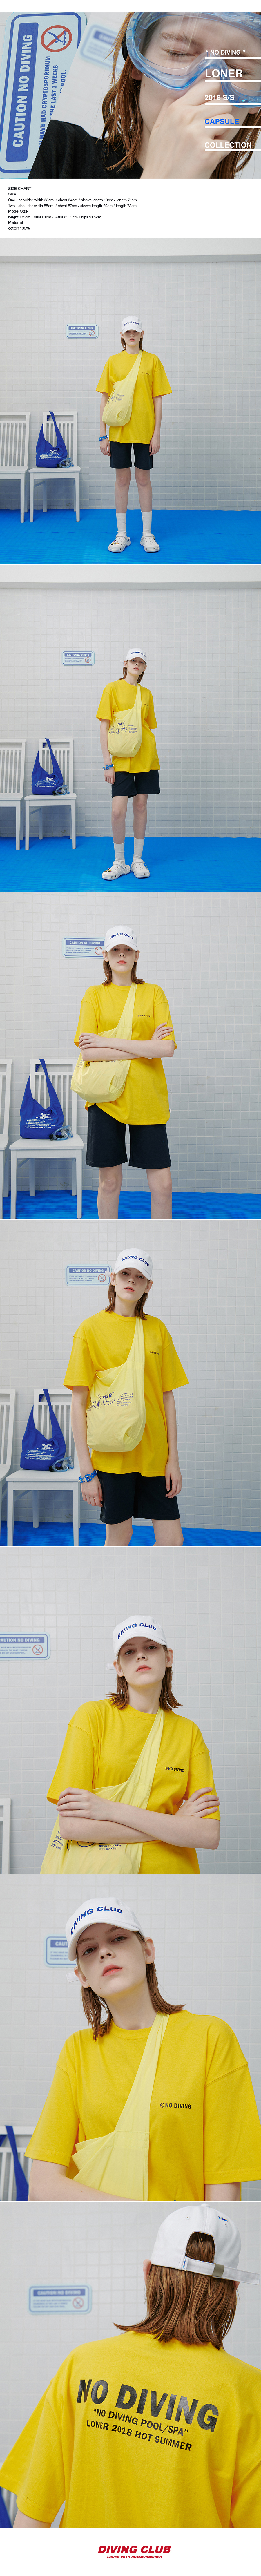 No diving tshirt-yellow.jpg